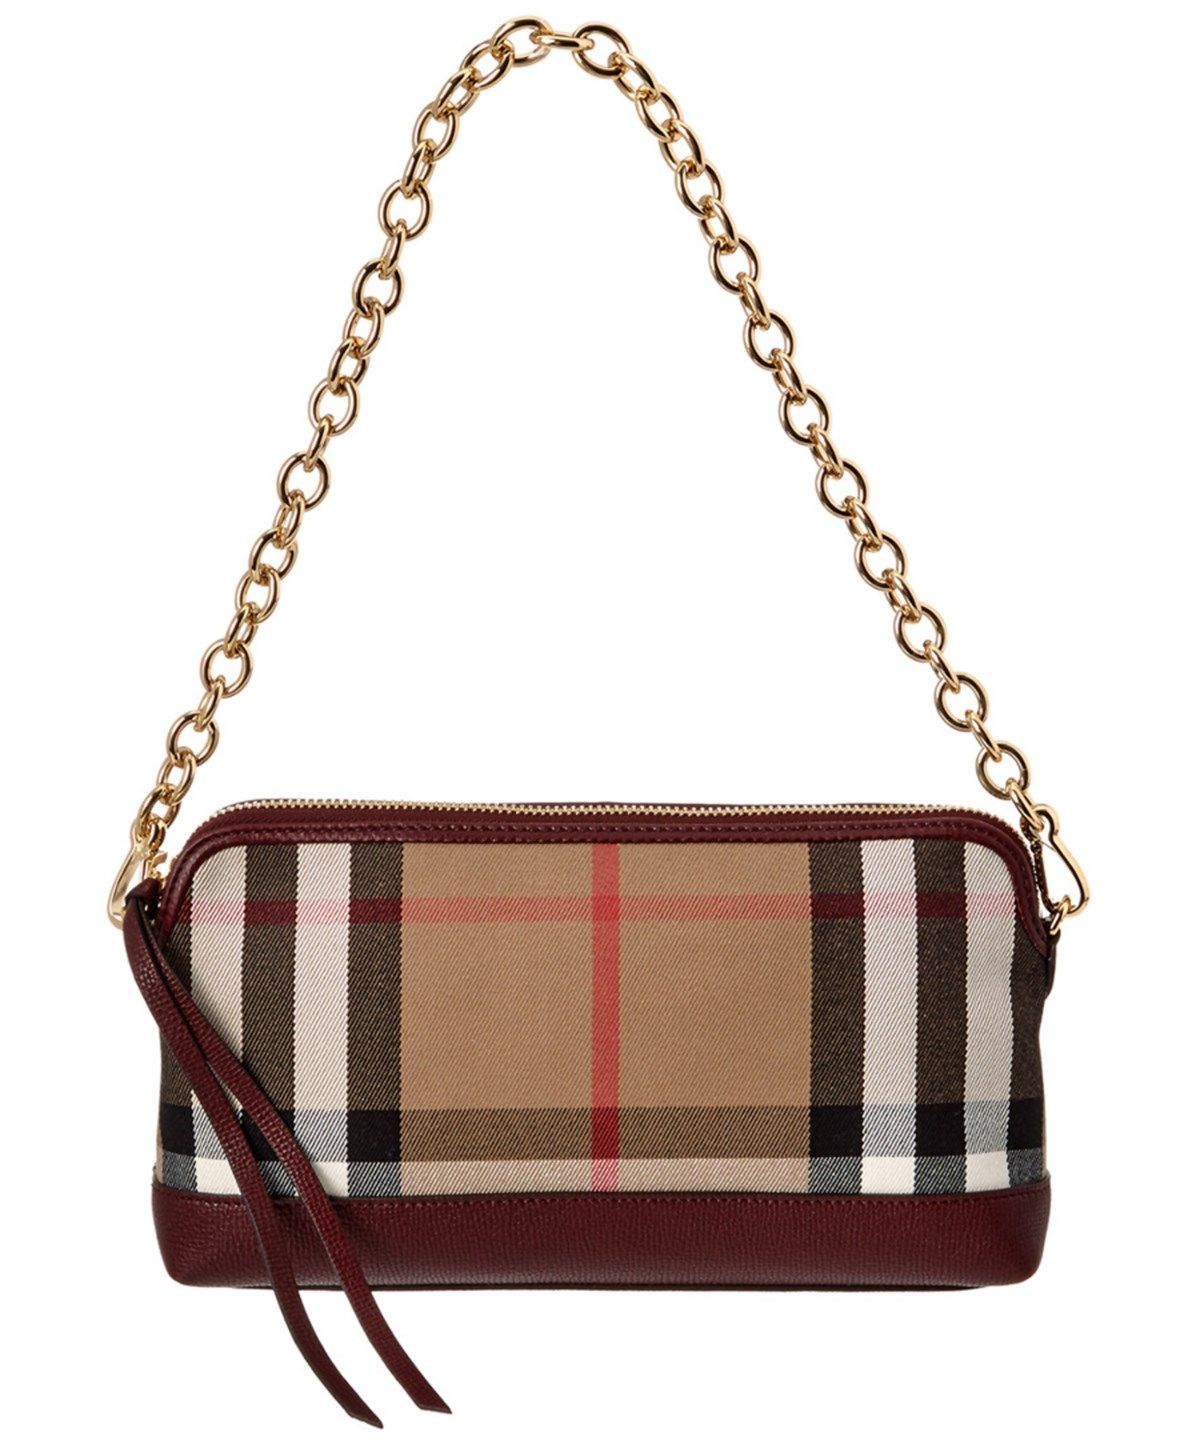 BURBERRY Burberry Abingdon House Check  Amp  Leather Clutch Bag .  burberry   bags  shoulder bags  clutch  lining  leather  hand bags   178c6ecaa2104